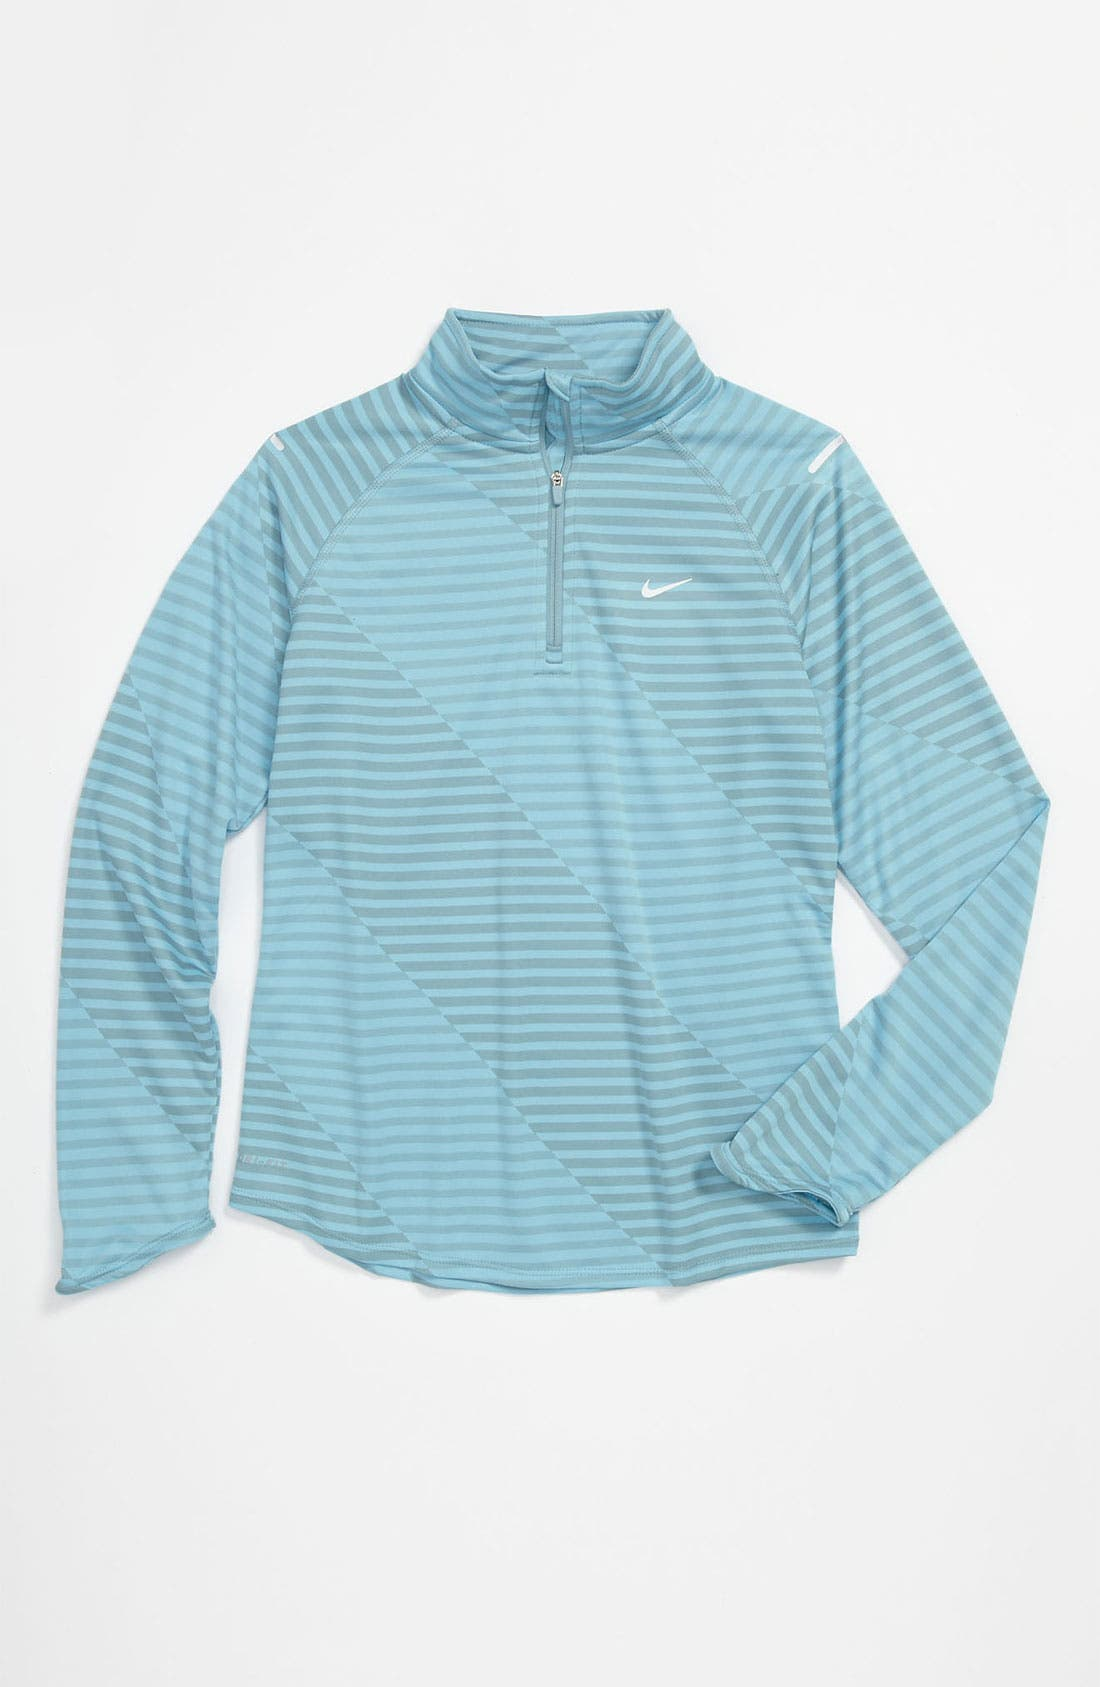 Main Image - Nike 'Jacquard Element' Jacket (Big Girls)